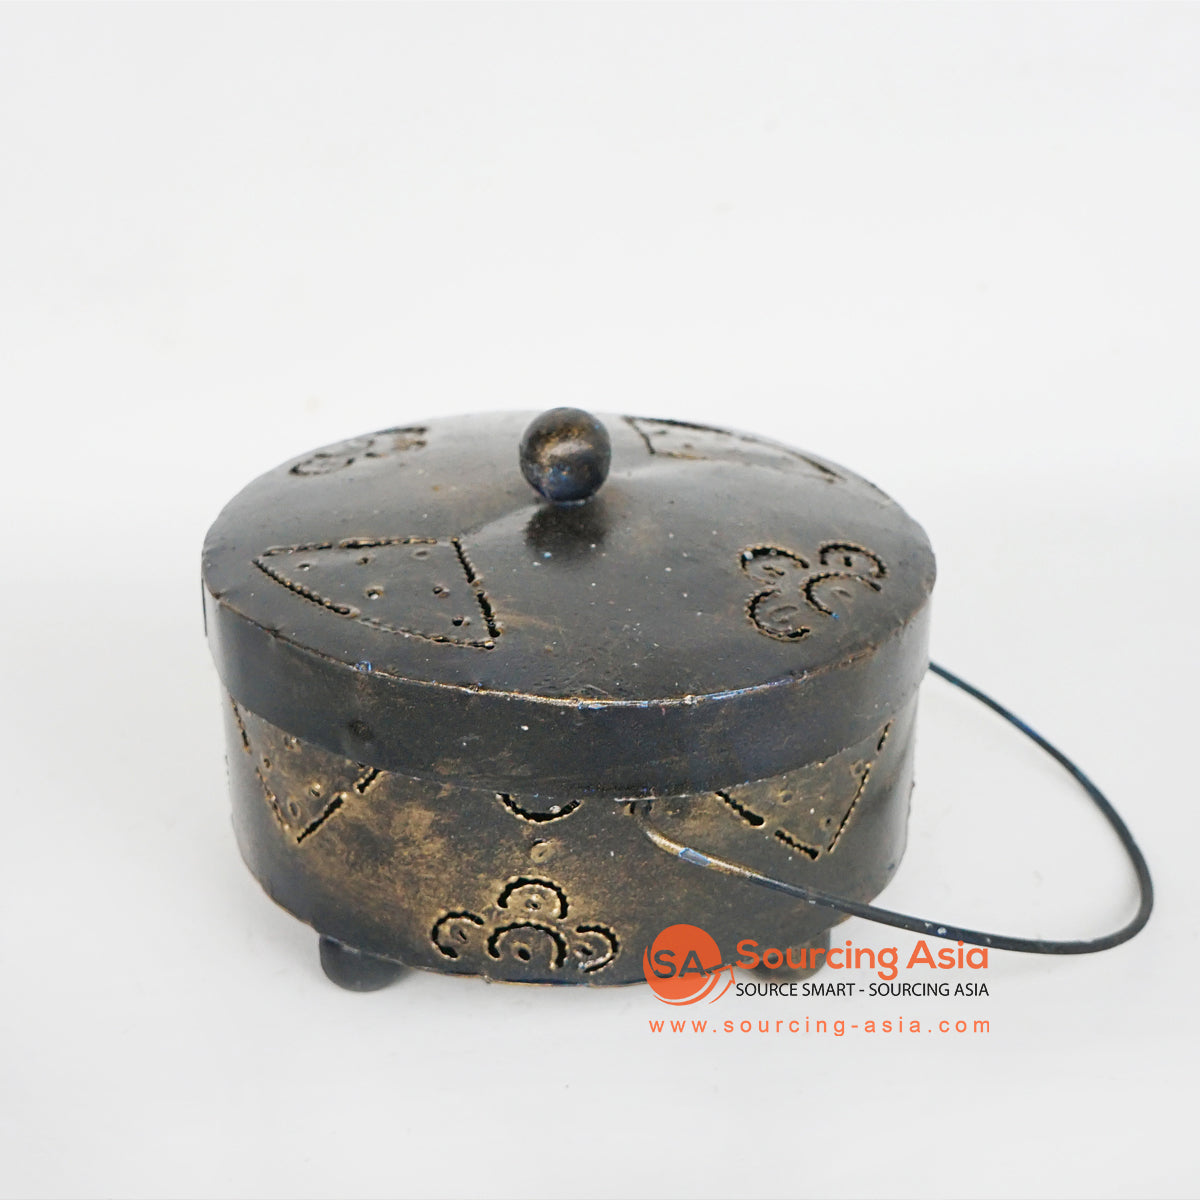 LISC065 HAND PAINTED BLACK GOLD METAL MOSQUITO COIL HOLDER